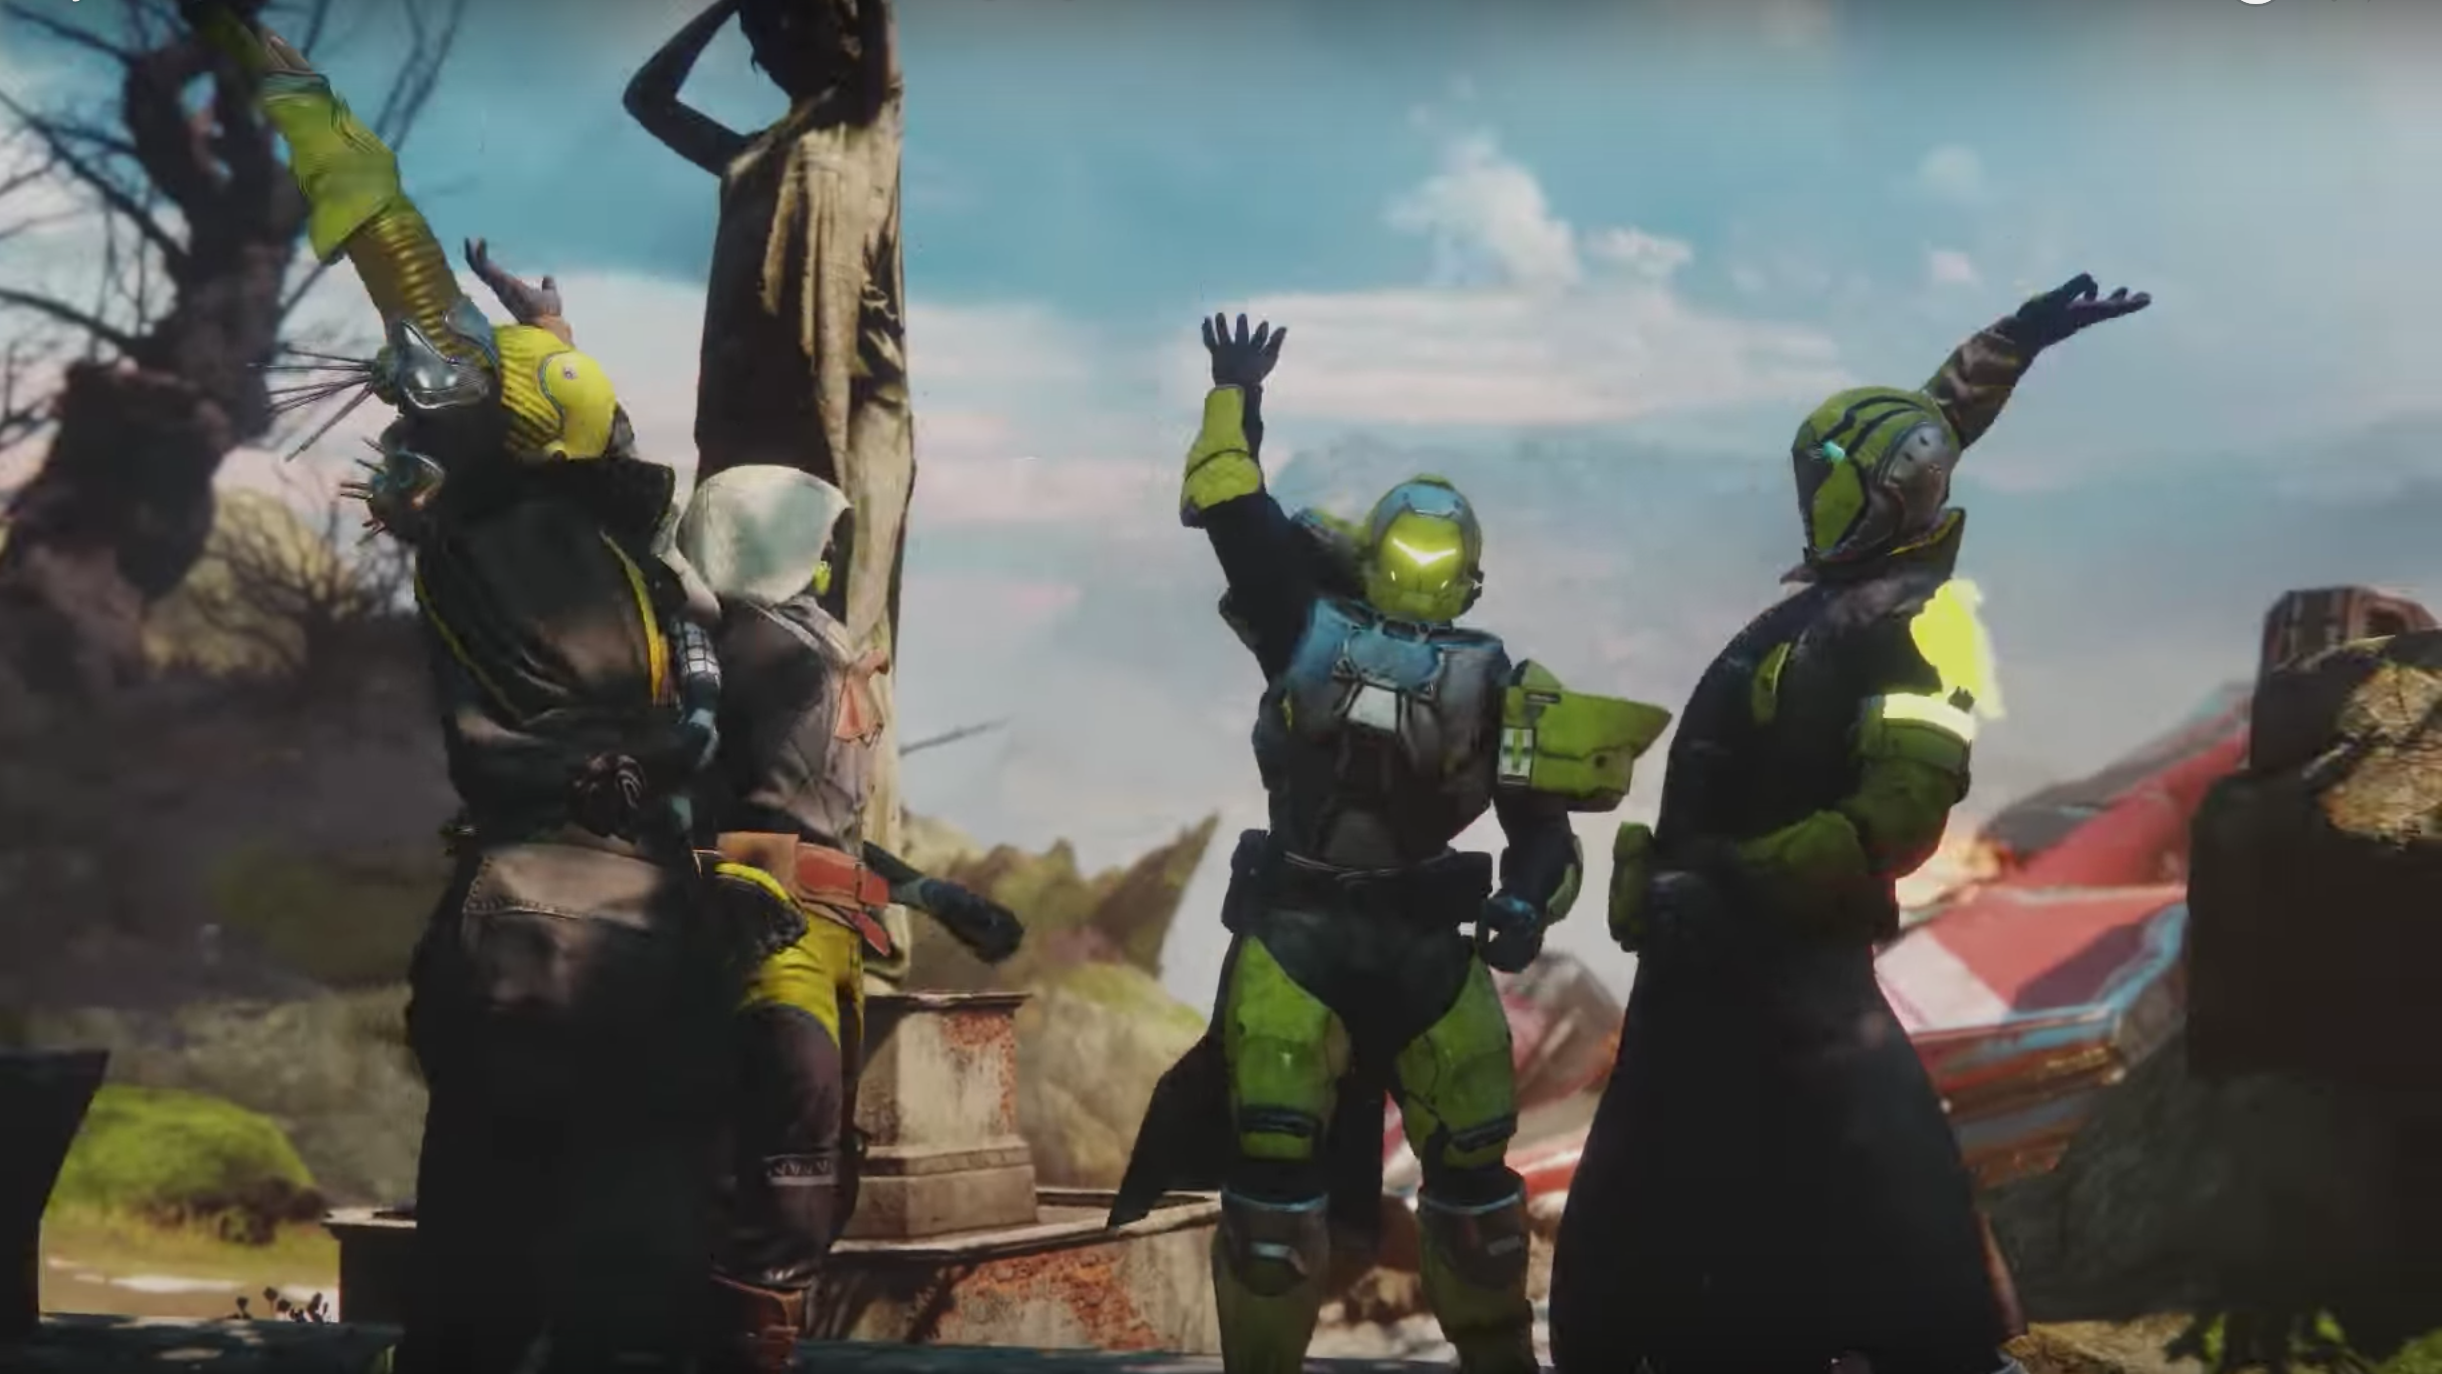 Story trailer for Destiny 2: Forsaken drops